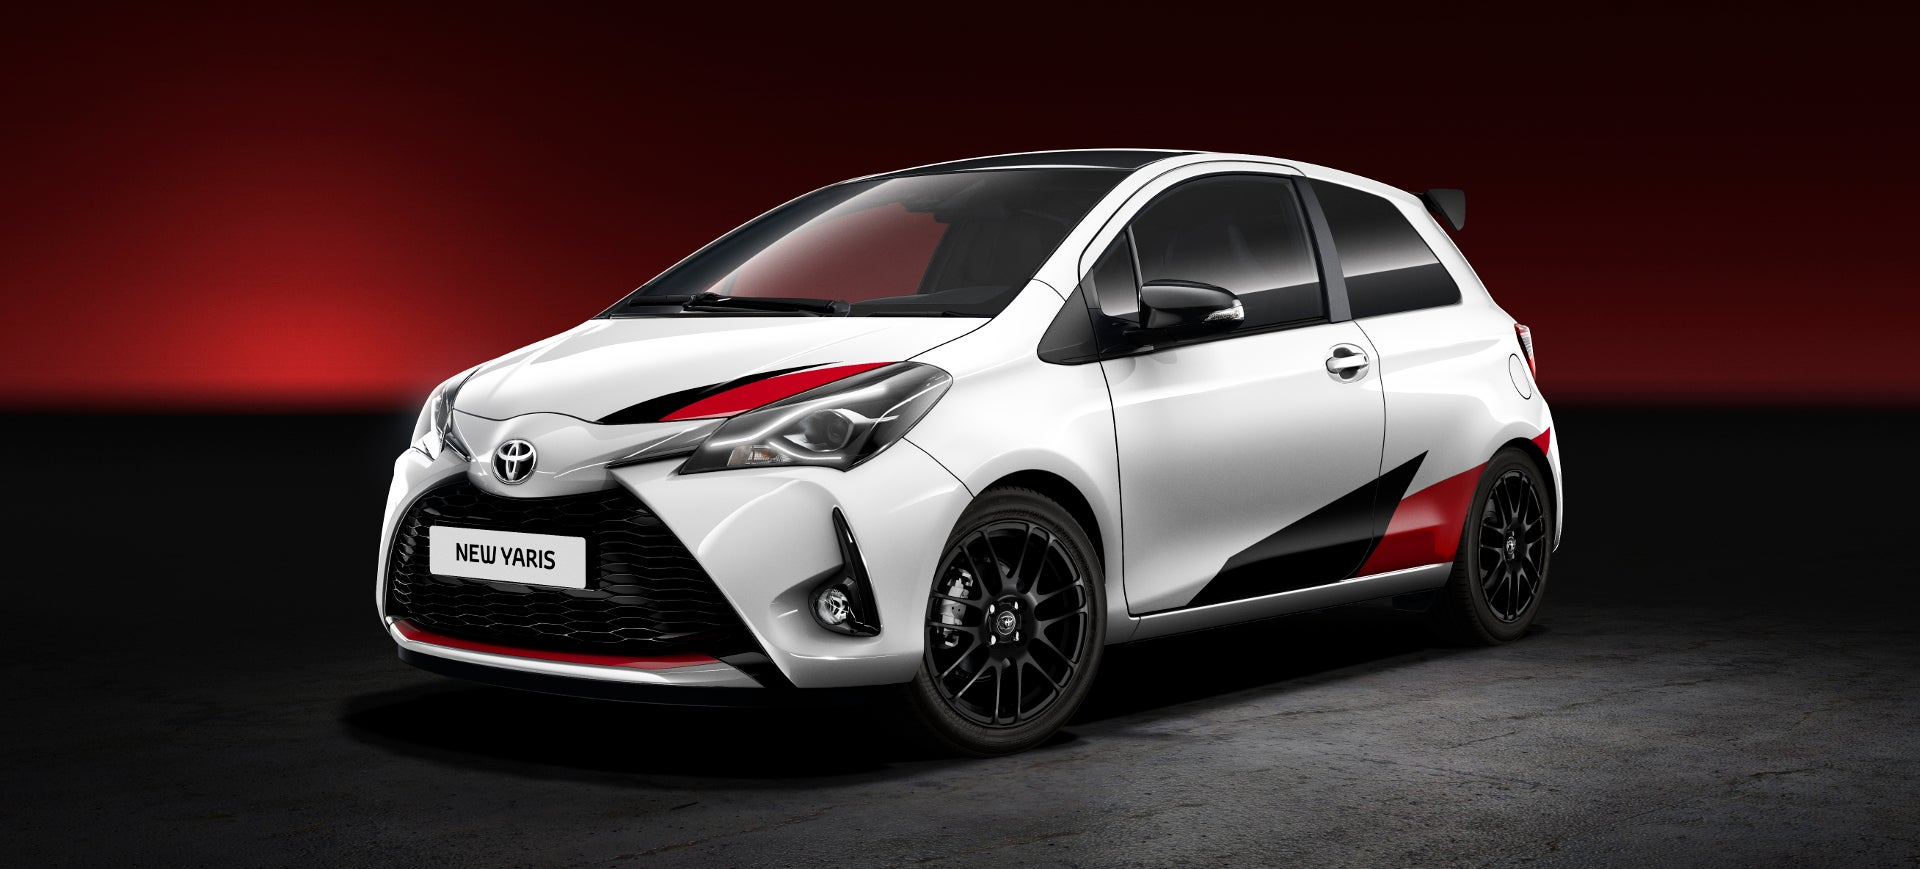 Toyota Is Building The 210 Horsepower Yaris Hot Hatch We Deserve But Won't Get